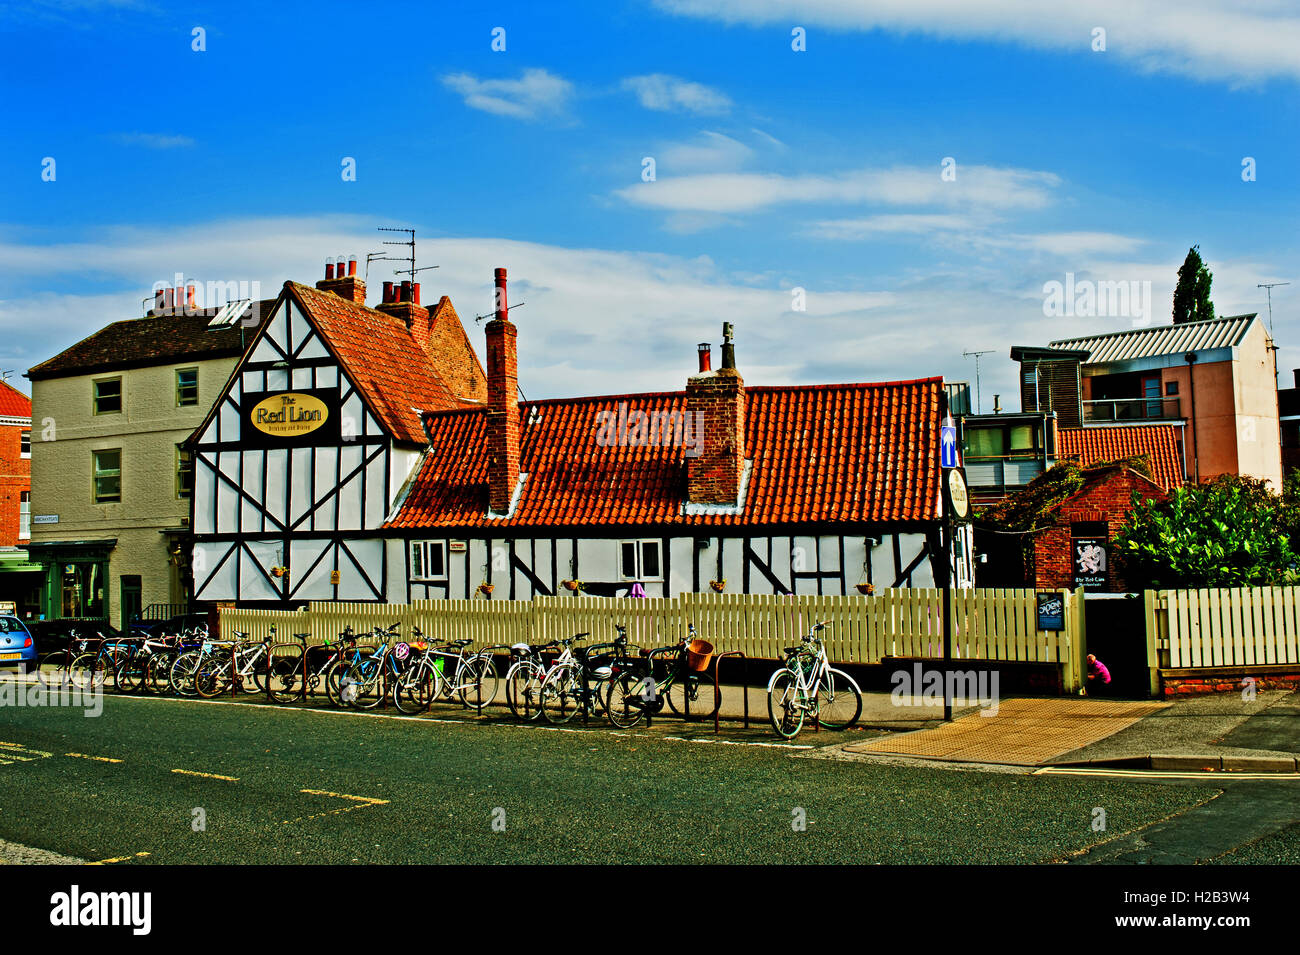 The Red Lion, Merchantgate, York - Stock Image